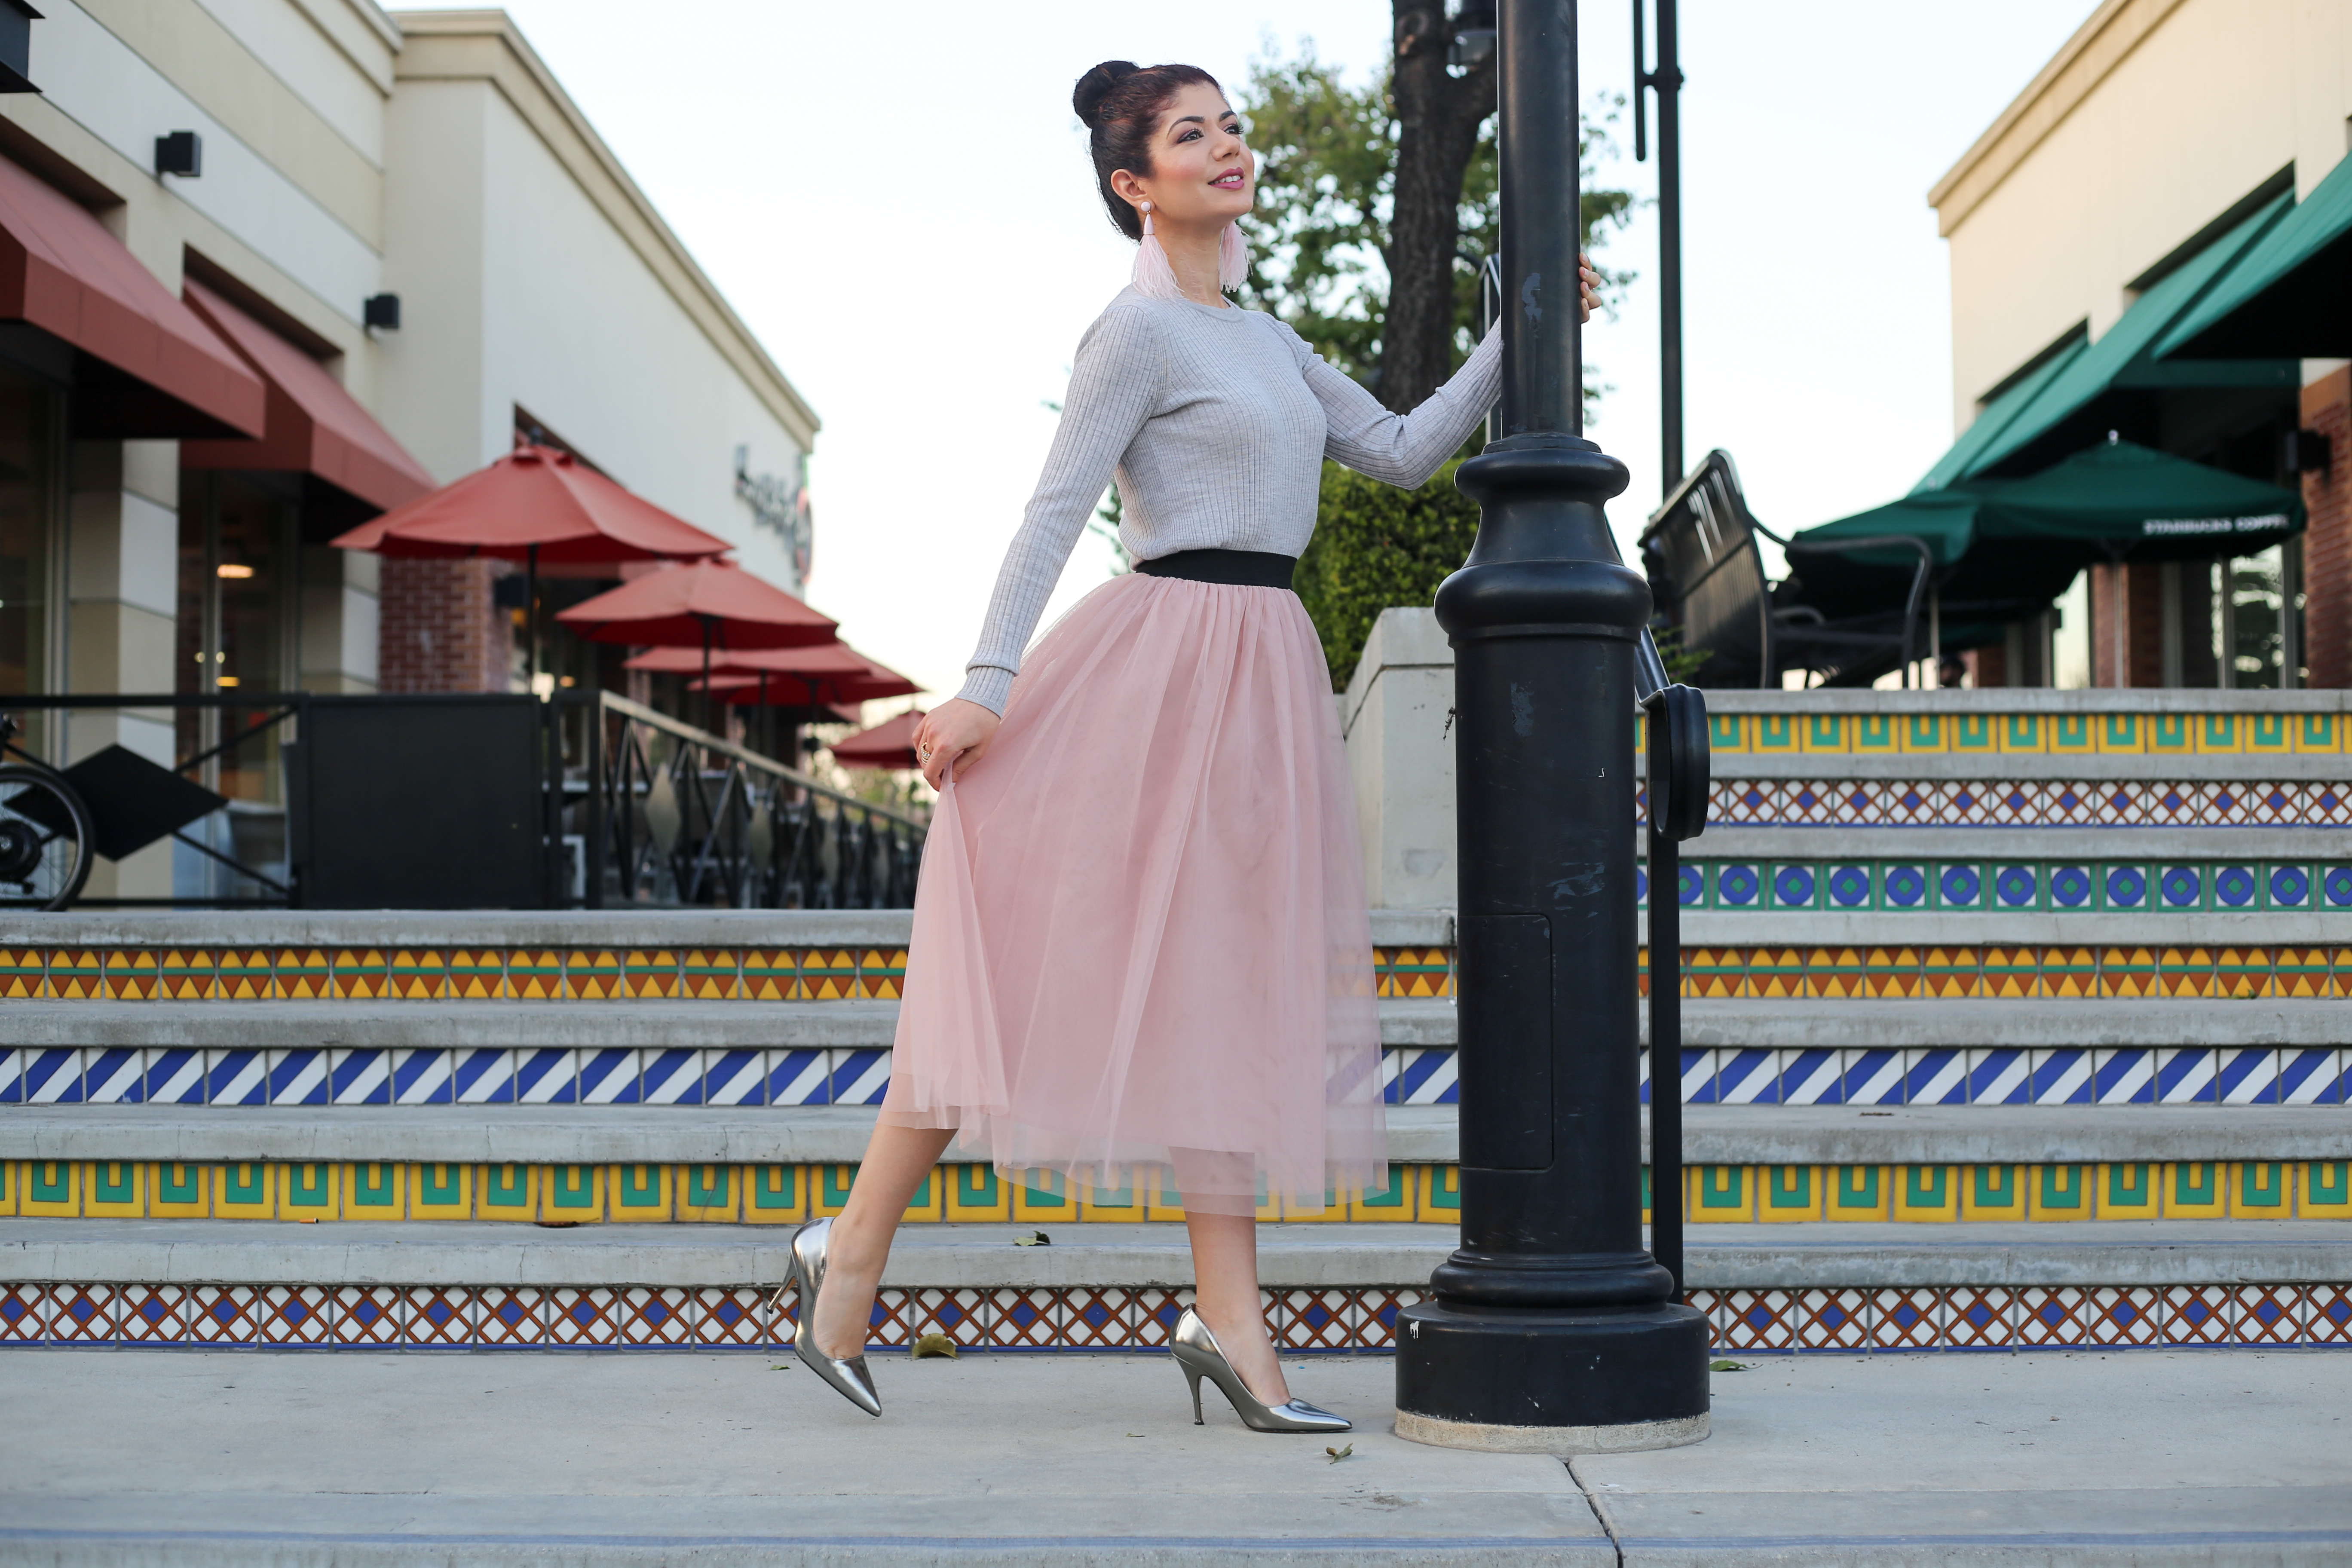 5c4c8856e The Versatility of a Blush Tulle Skirt: Day 2 of 12 Days of Skirtmas